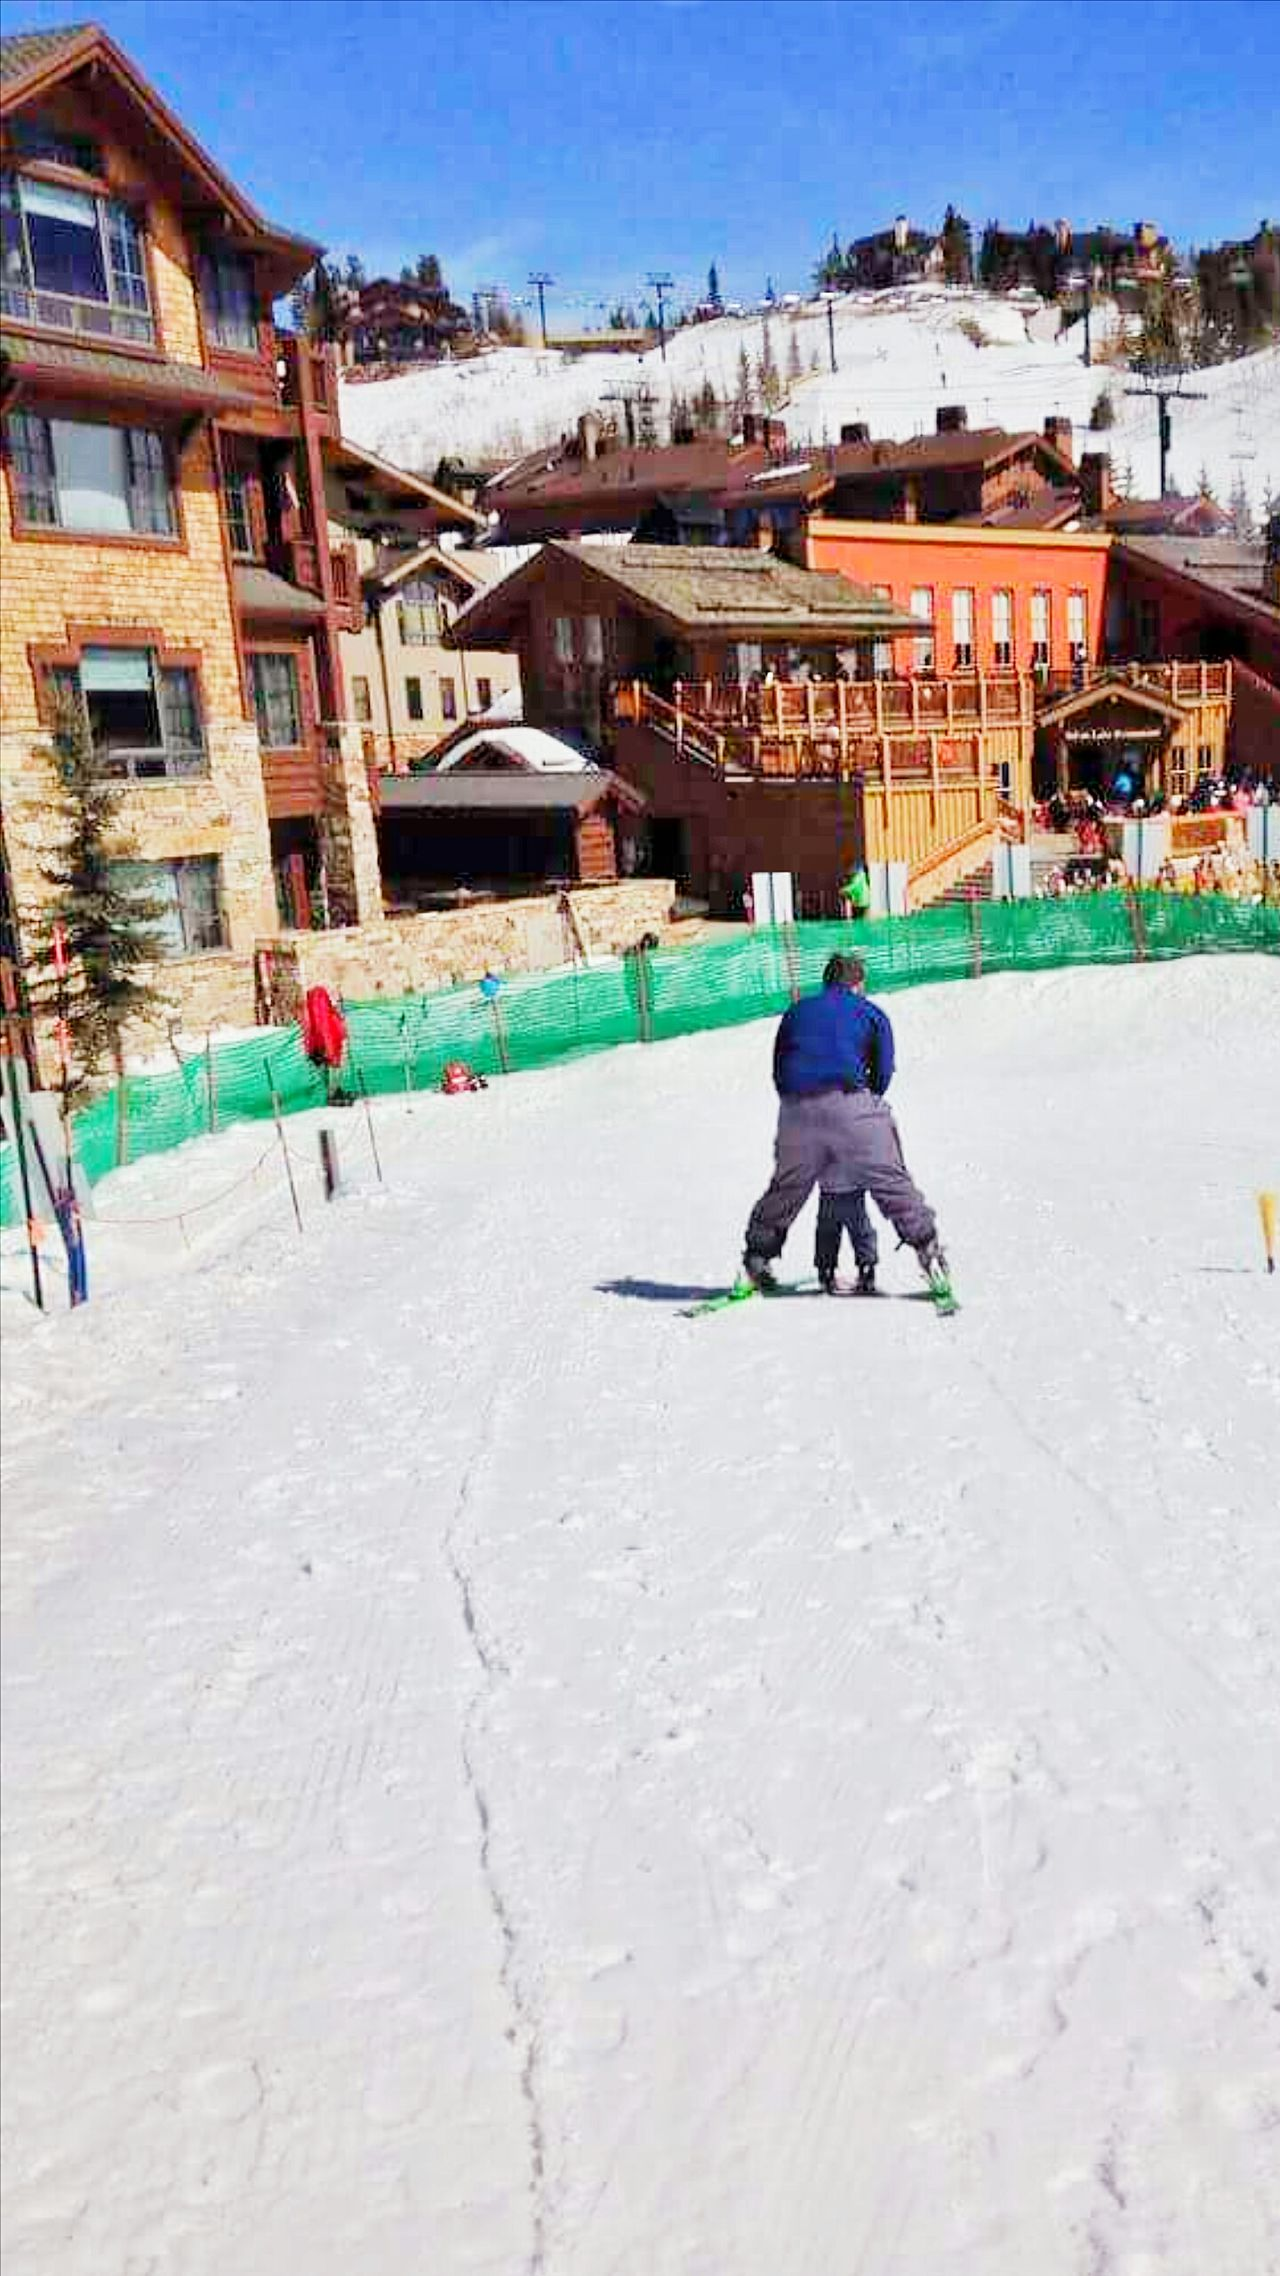 Snow Sports Winter Rear View Childhood Cold Temperature Architecture Full Length Nature Children Only Moving Moving Together Sky Resort Winter Learning Father And Son Helping Refugees Skiing Ski Resort  Winter Clothes Snowy Ground Outdoors Nature Togetherness Helping Winter Sports